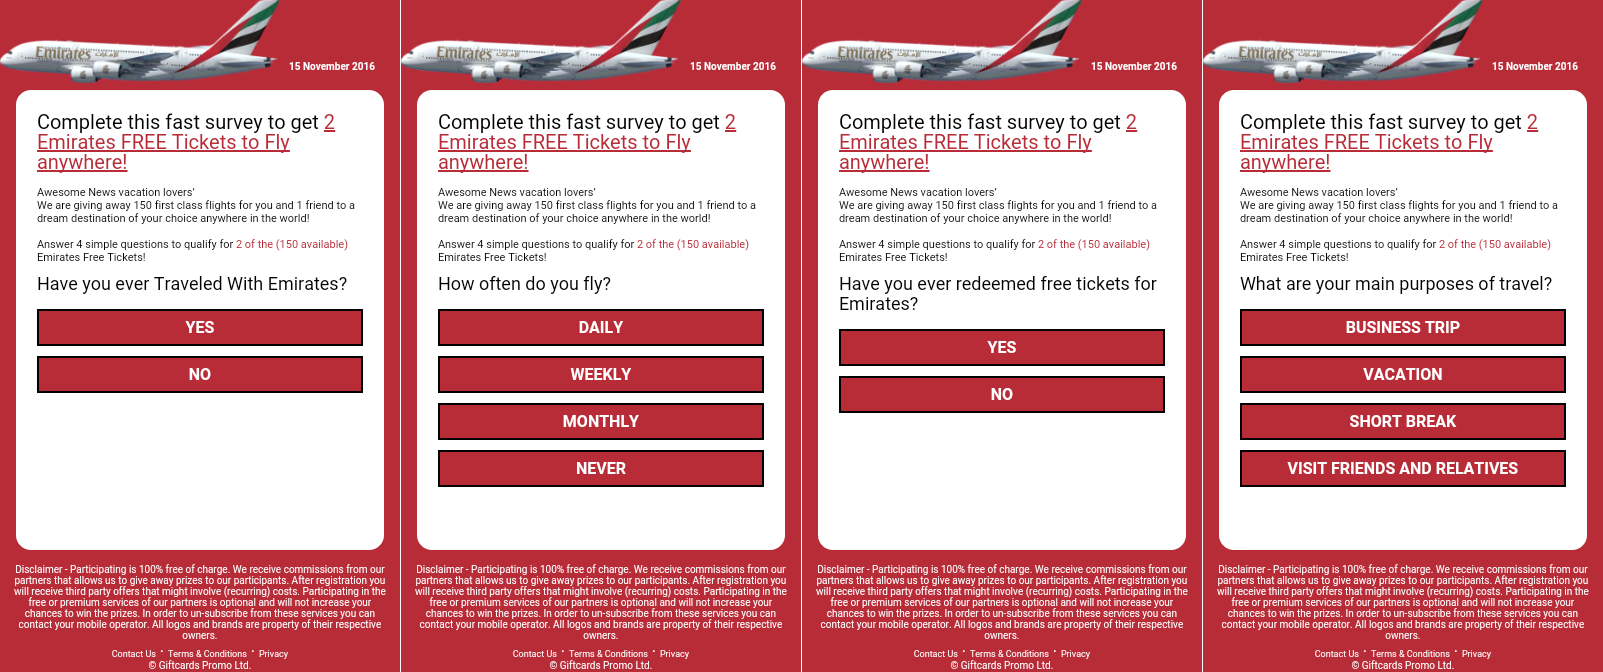 2 WhatsApp survey  - 2 WhatsApp survey - New airline scam promises free Emirates flight tickets